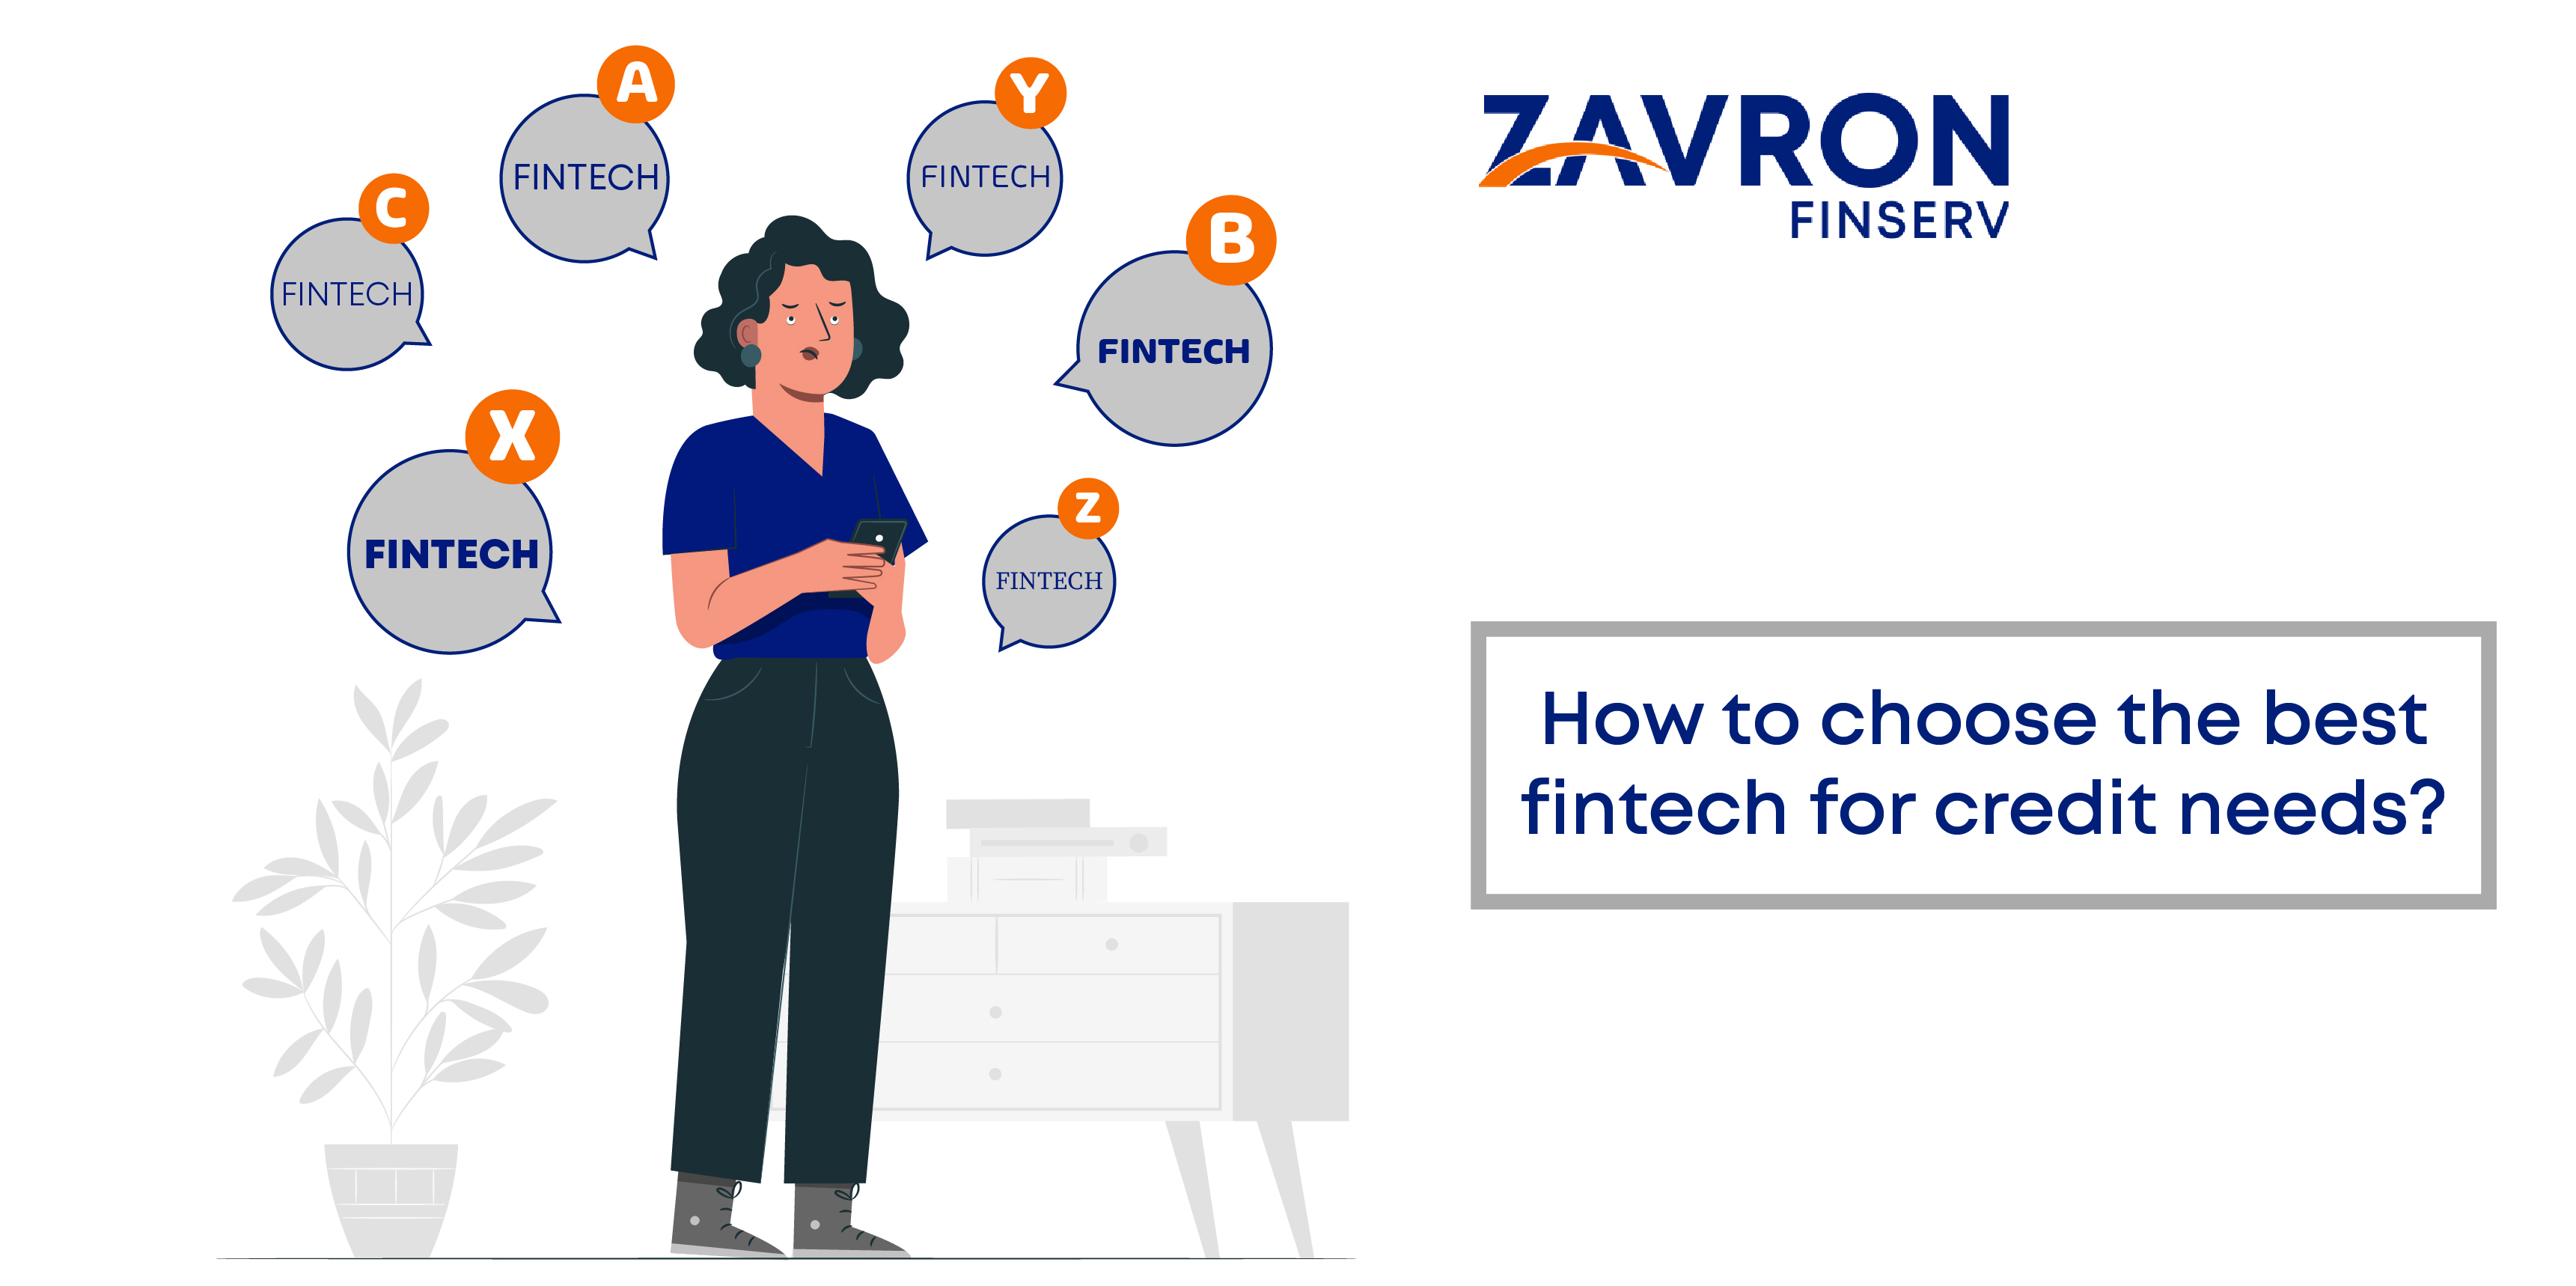 How to choose the best fintech for credit needs?